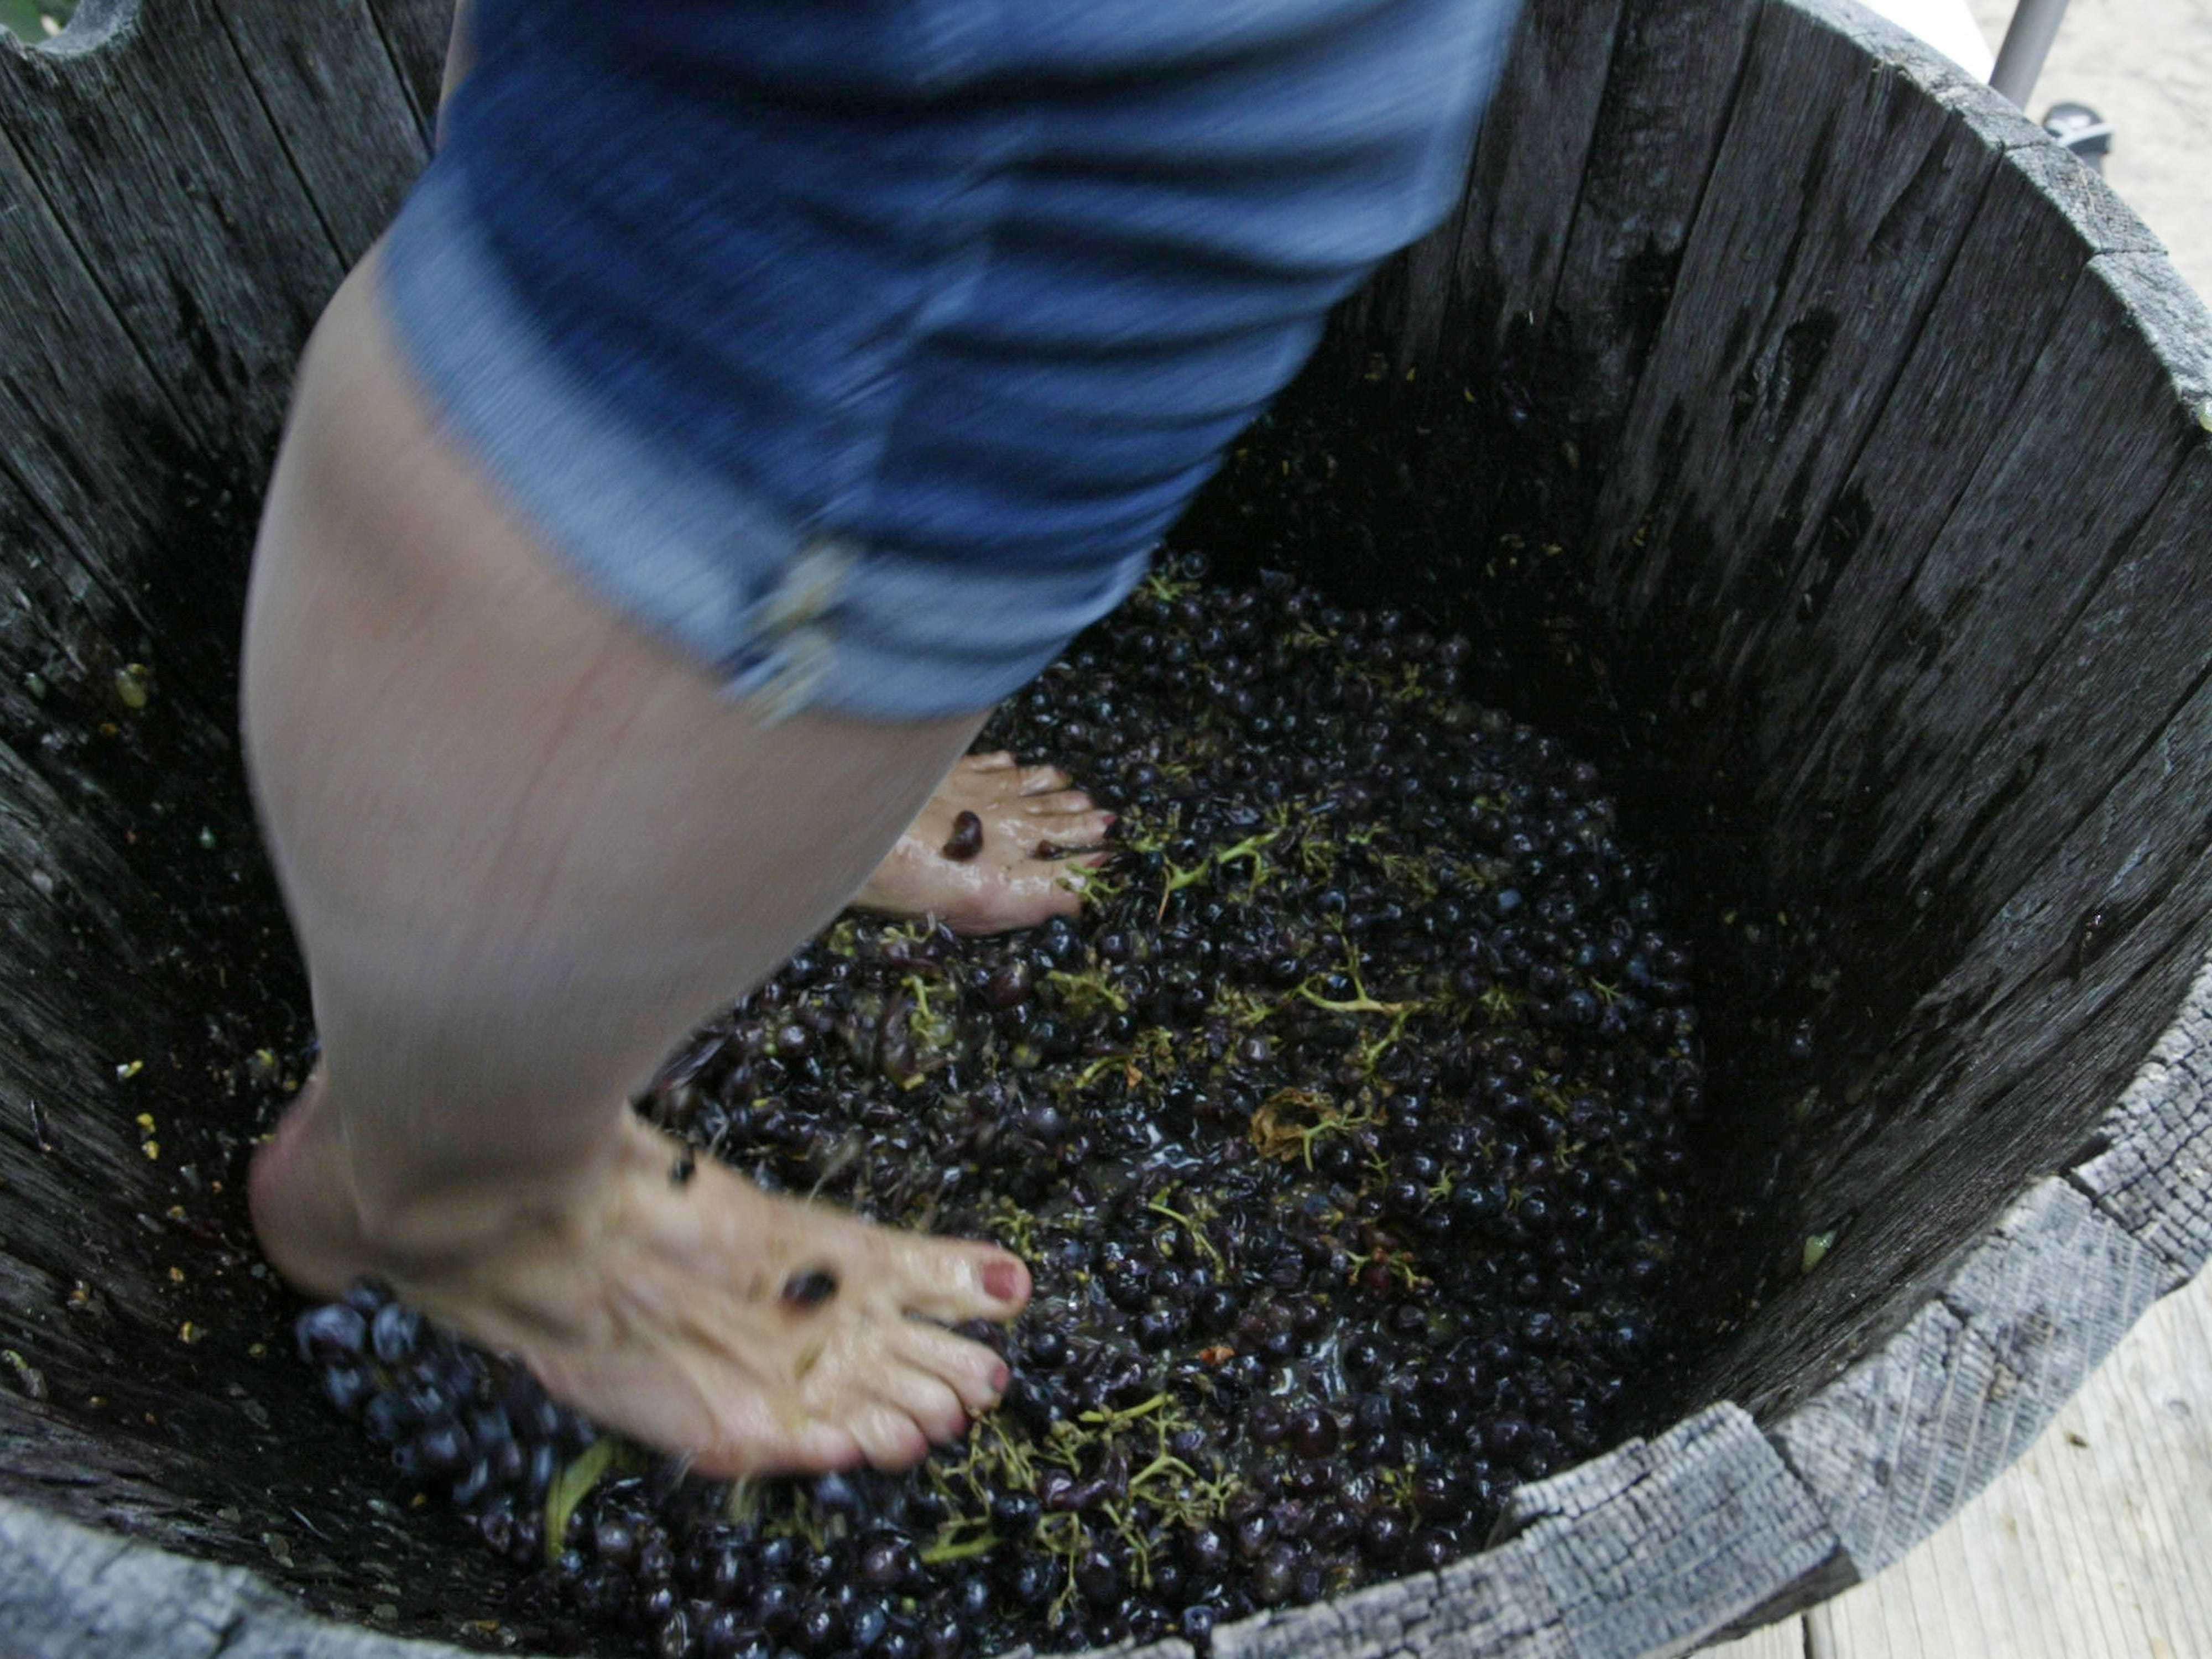 Feet at work during the grape stomp at the Harvest Festival & Grape Stomp at The Blind Horse Restaurant and Winery, Saturday, September 22, 2018, in Kohler, Wis.